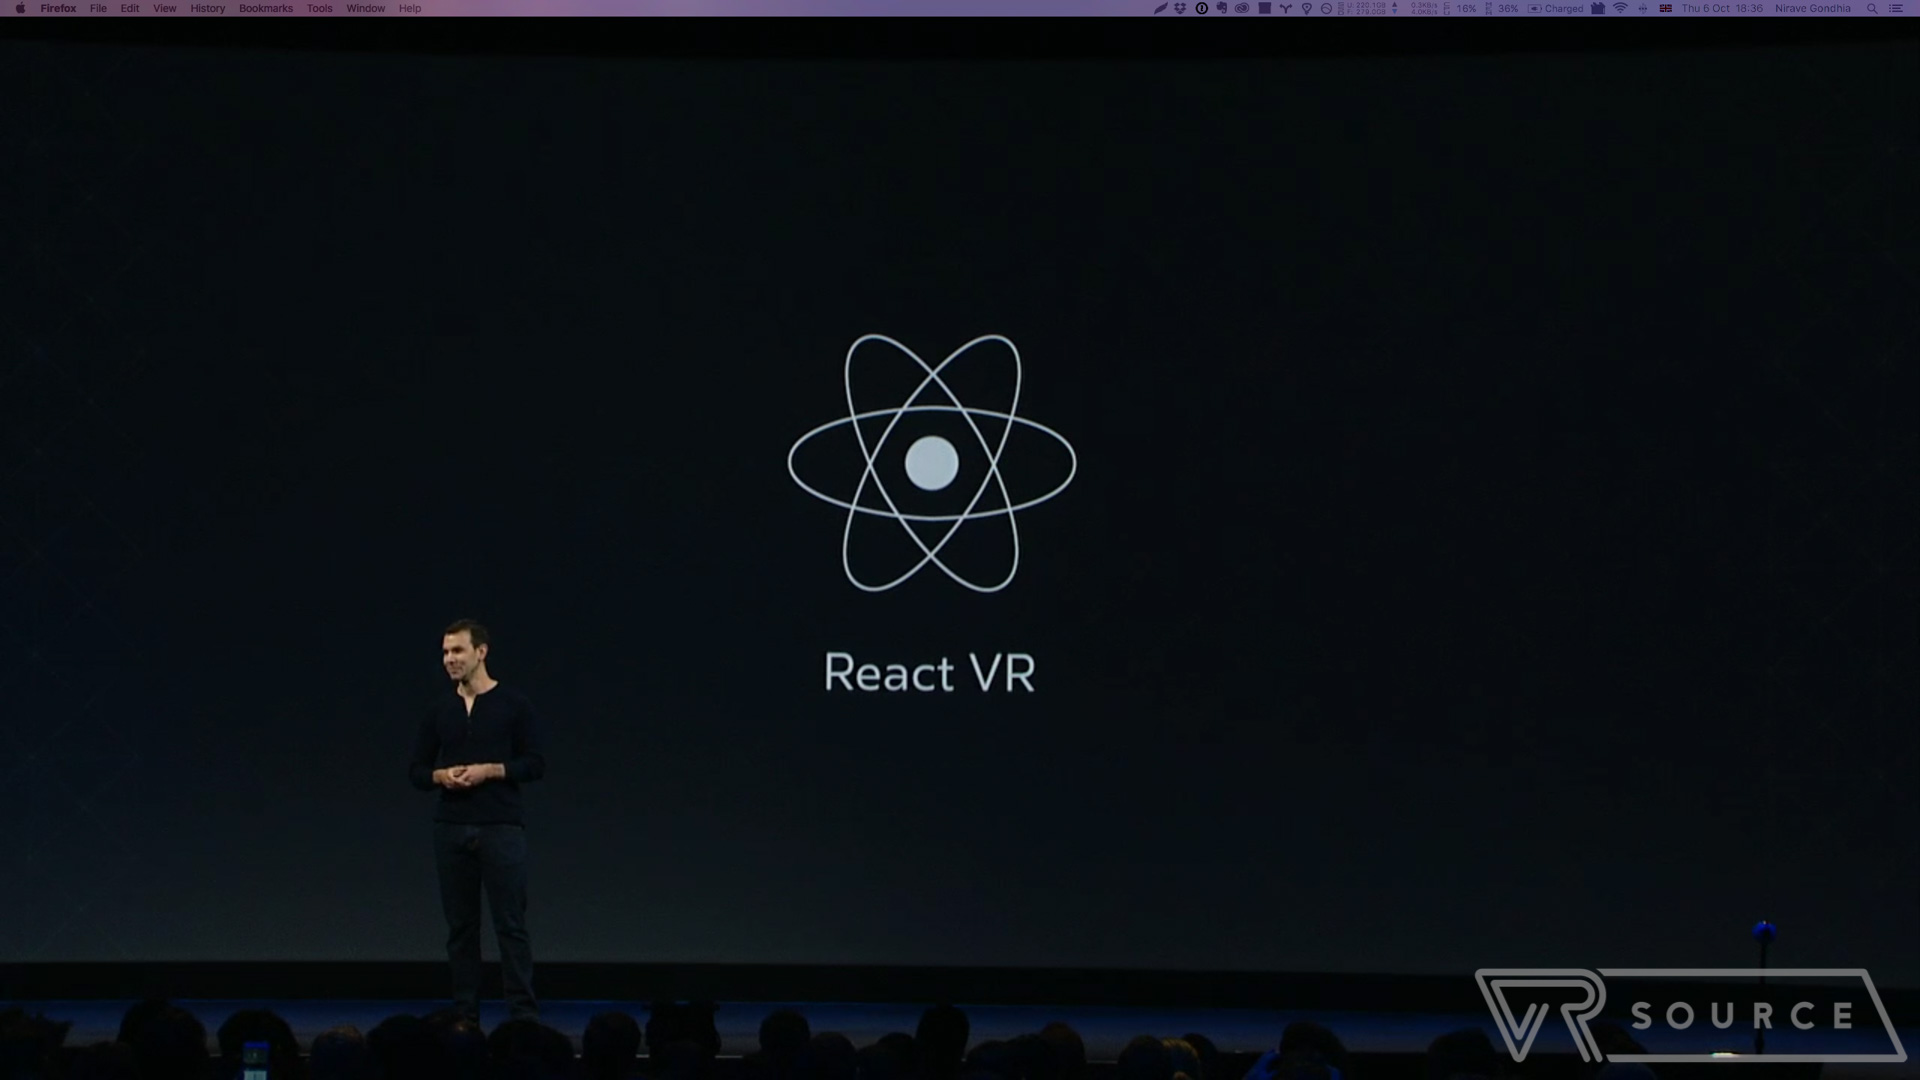 oculus-connect-web-vr-react-vr